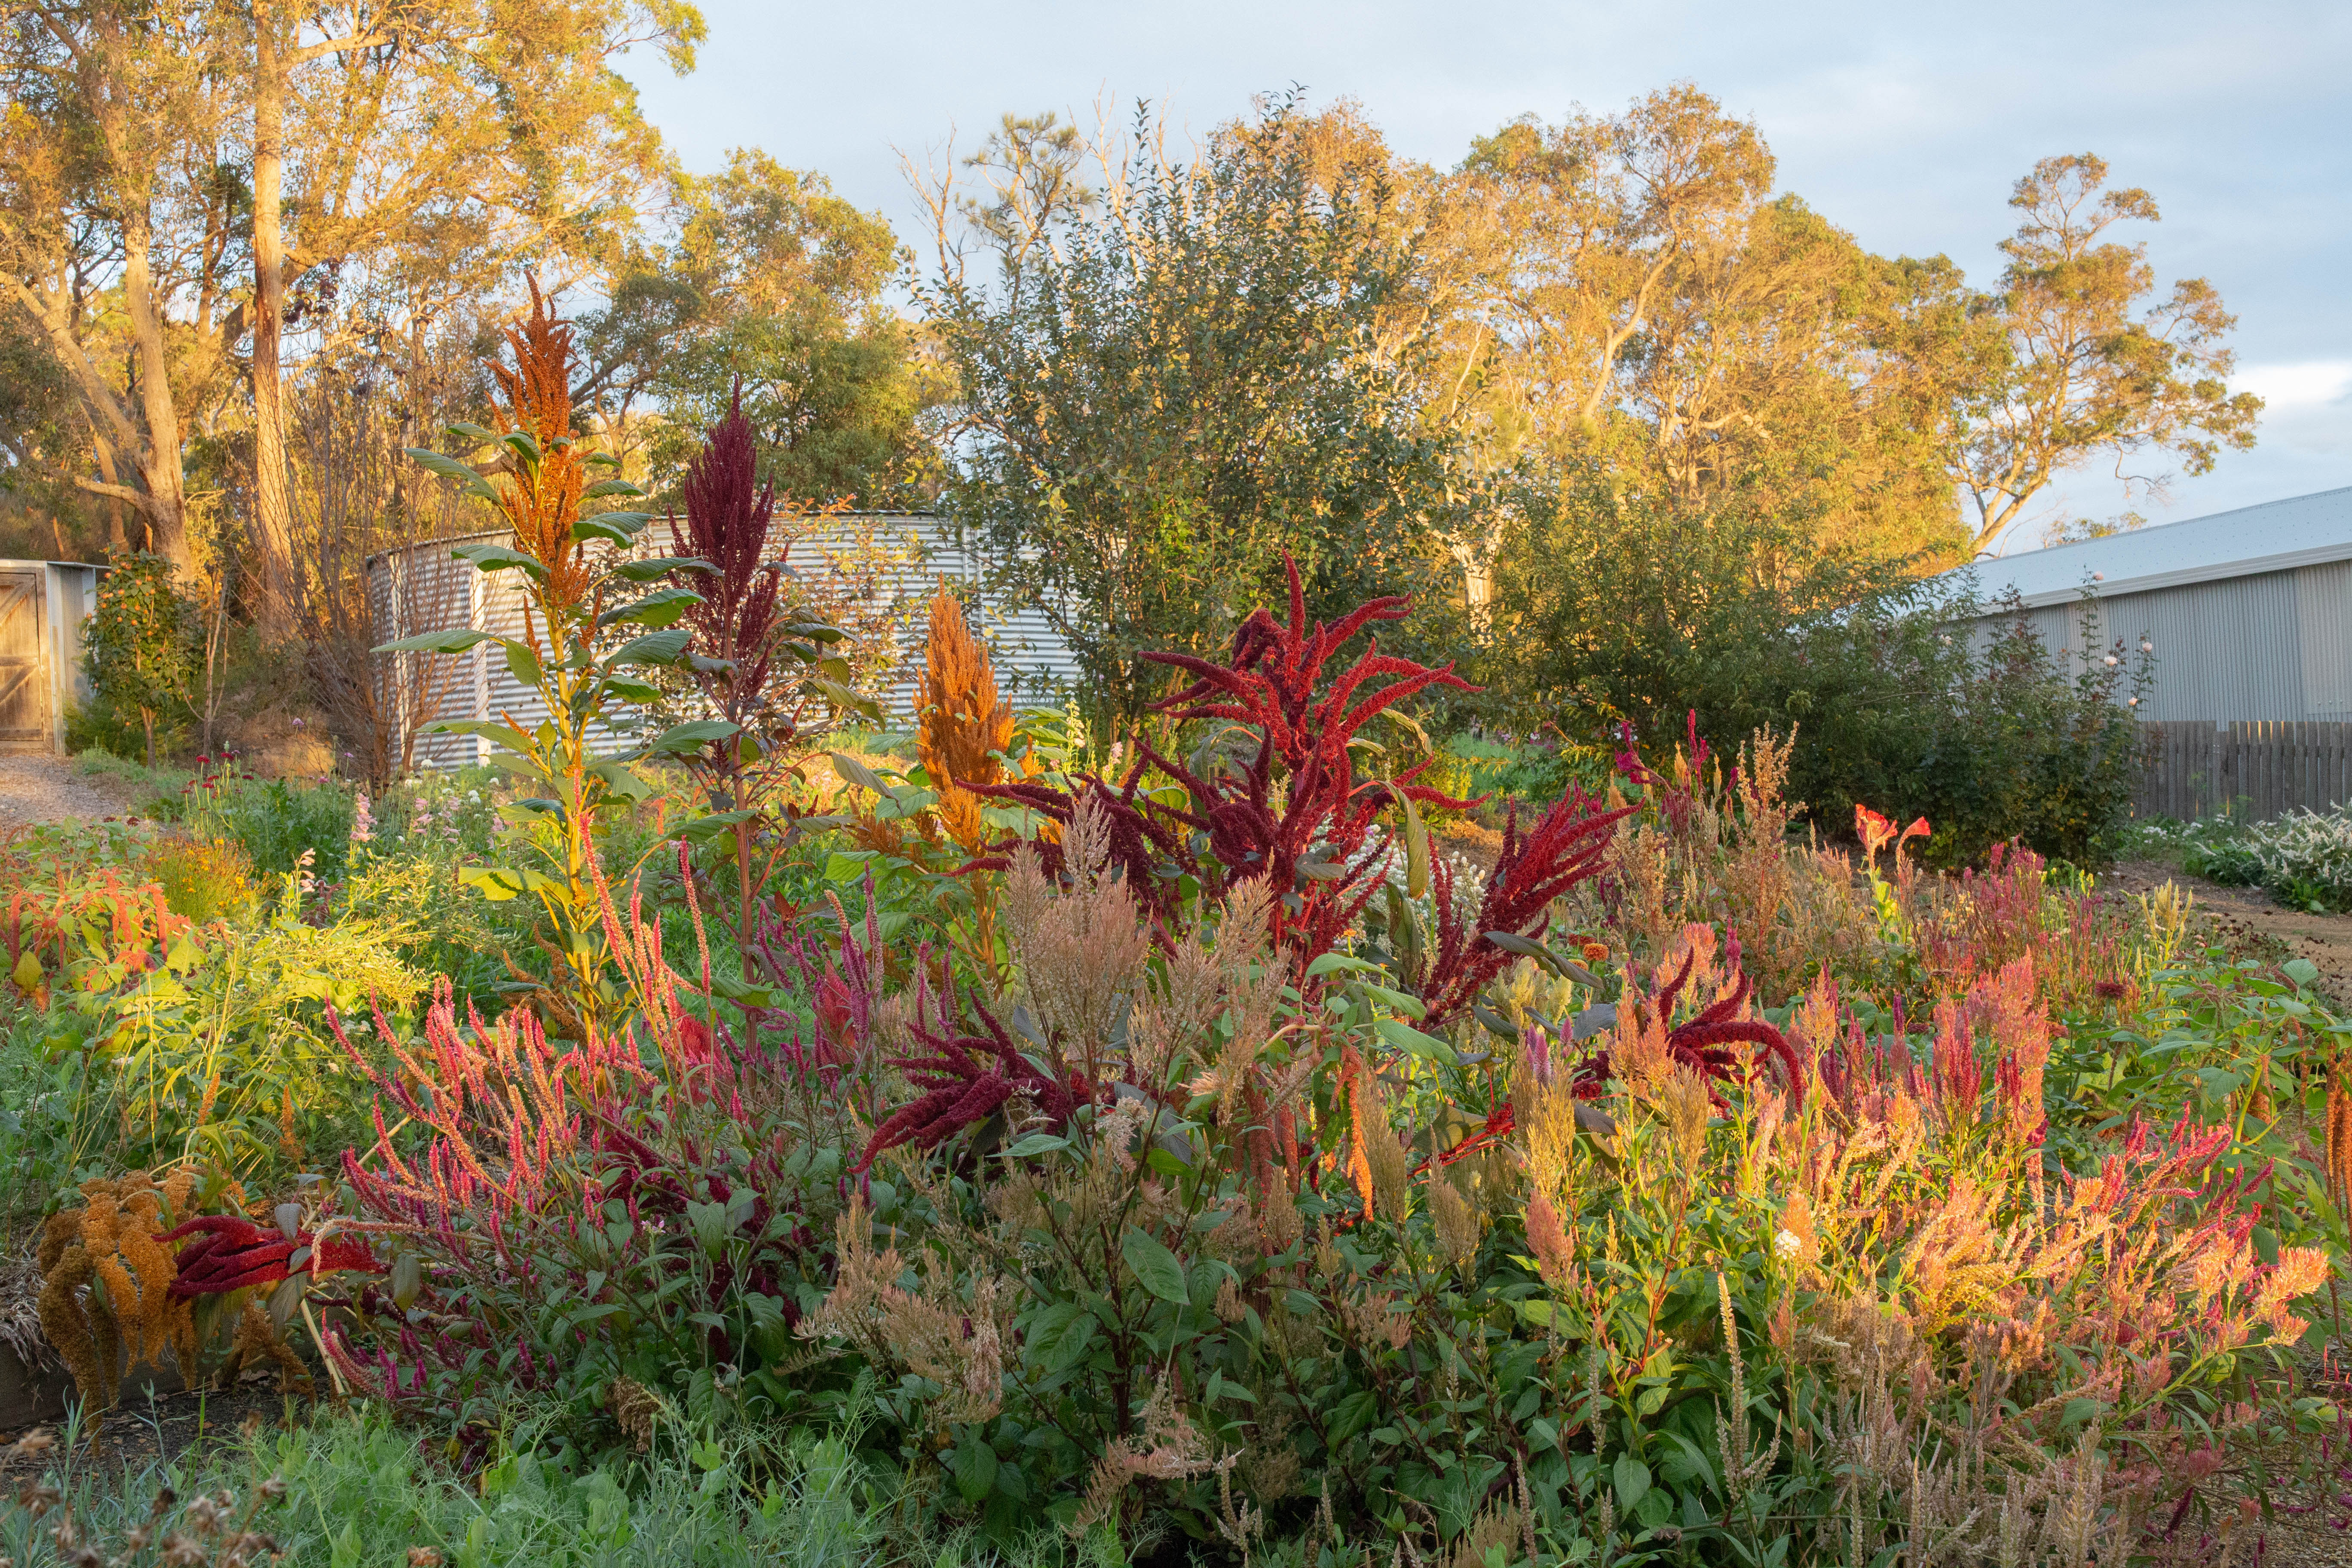 Autumn in the cutting garden